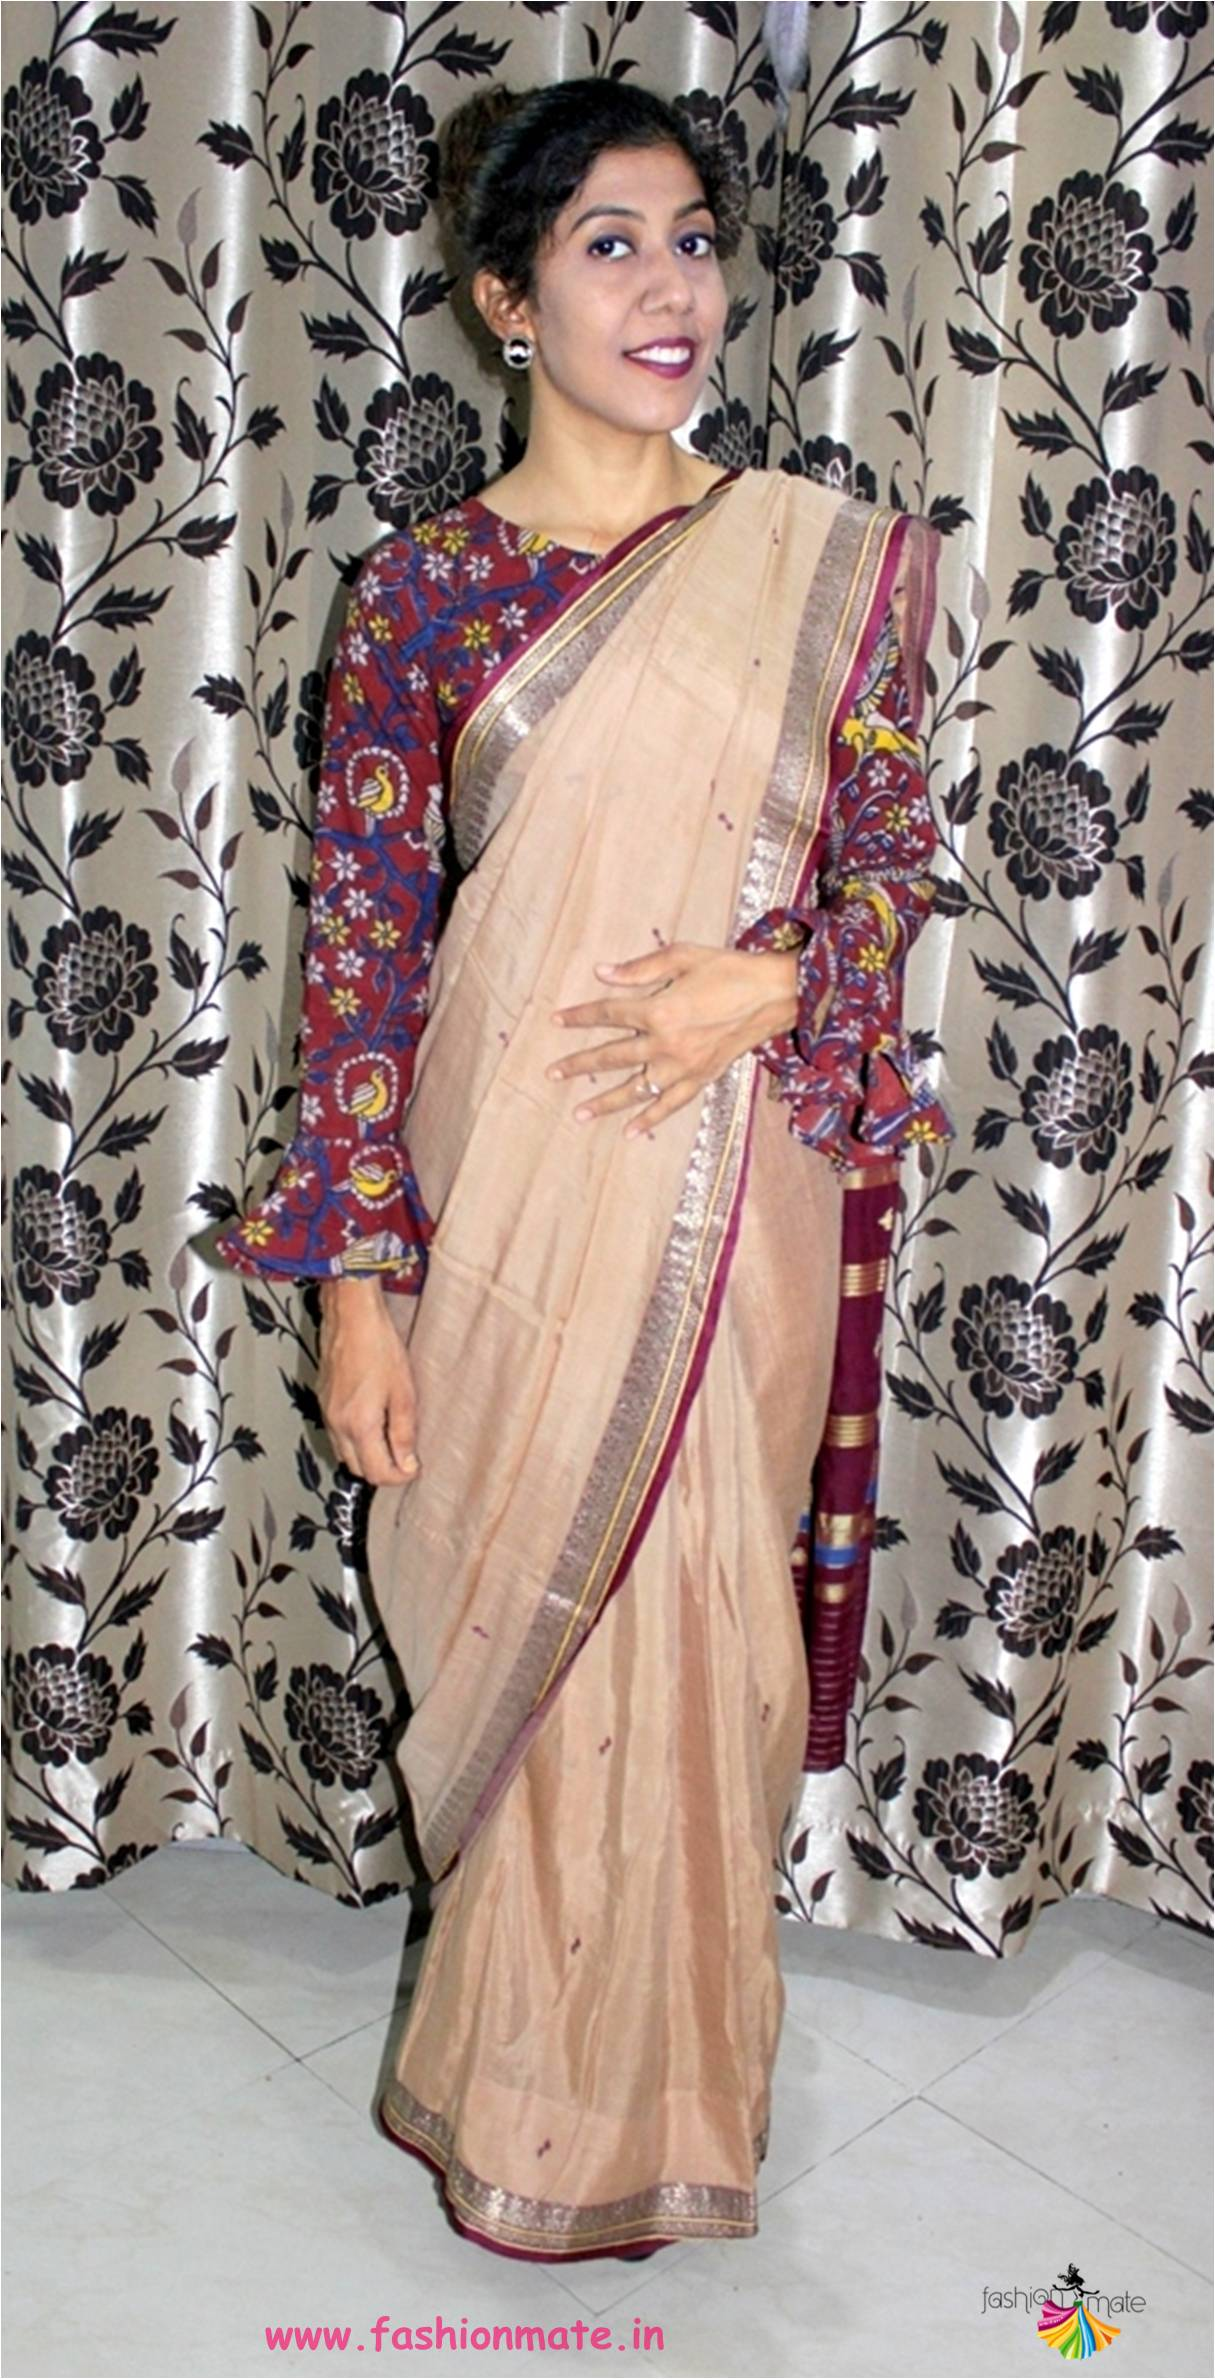 Linen Saree Trend – Tips to style your Linen or Cotton Saree for Party Look